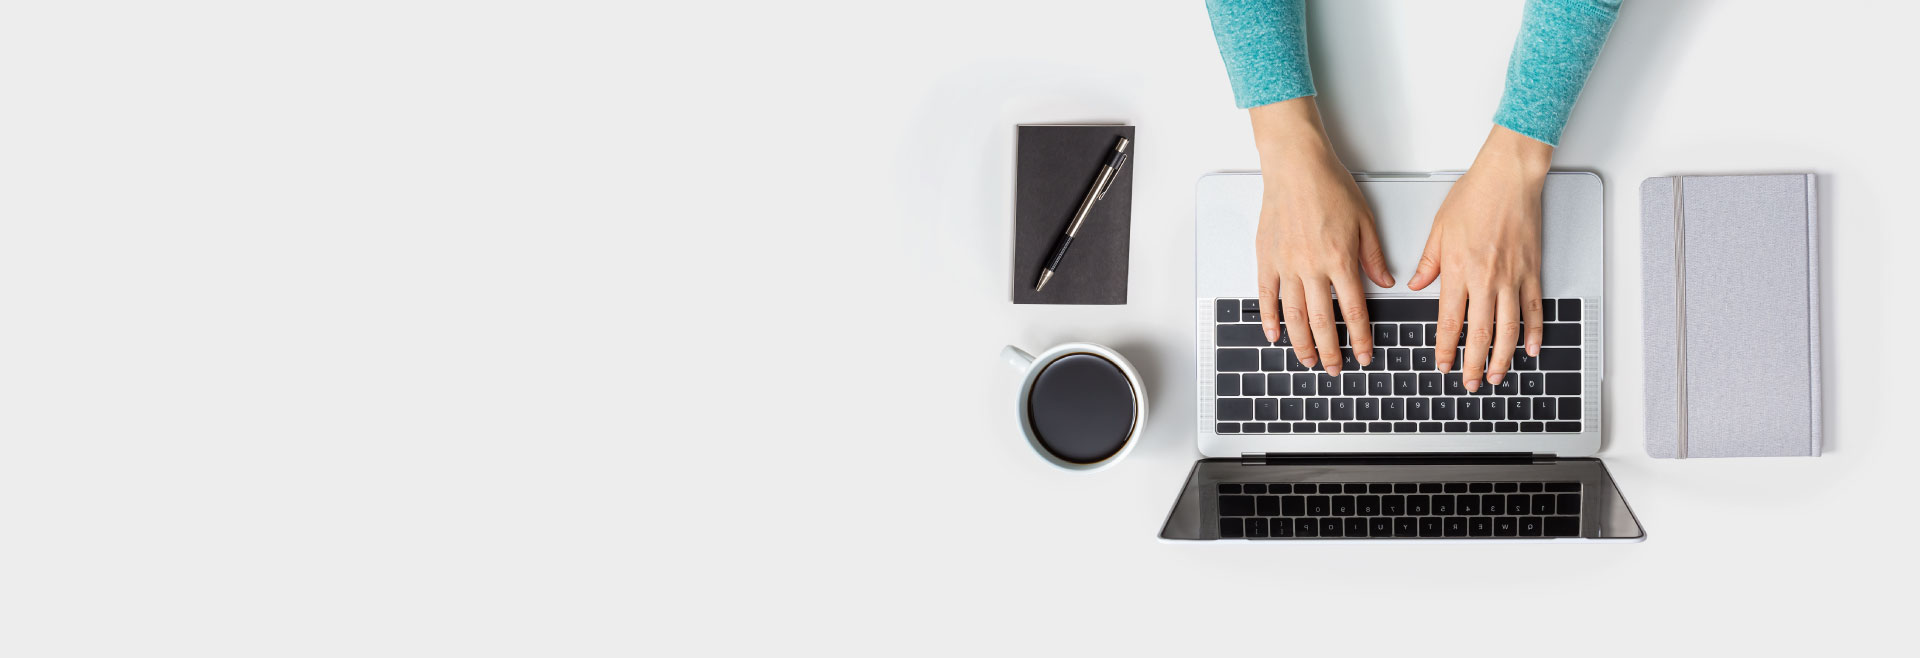 Image of person with a laptop at a desk